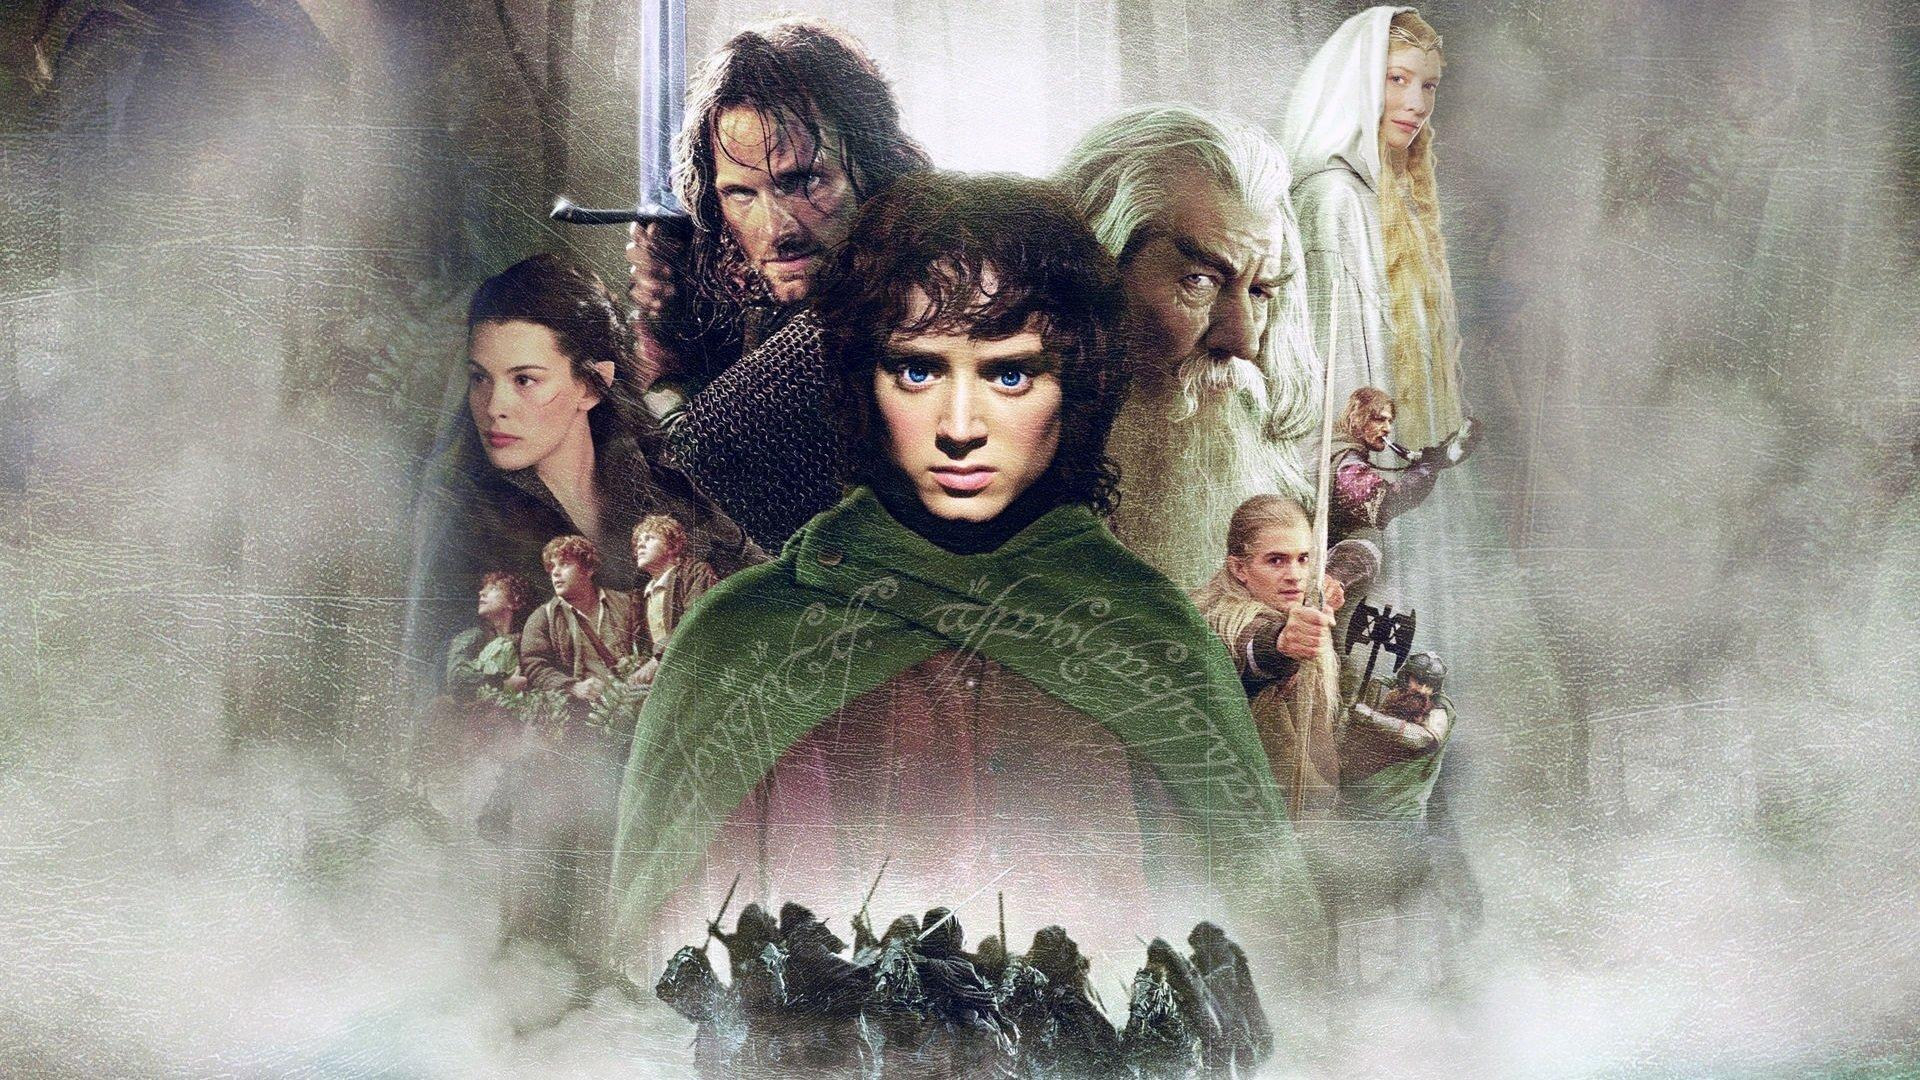 Free download The Lord Of The Rings: The Fellowship Of The Ring